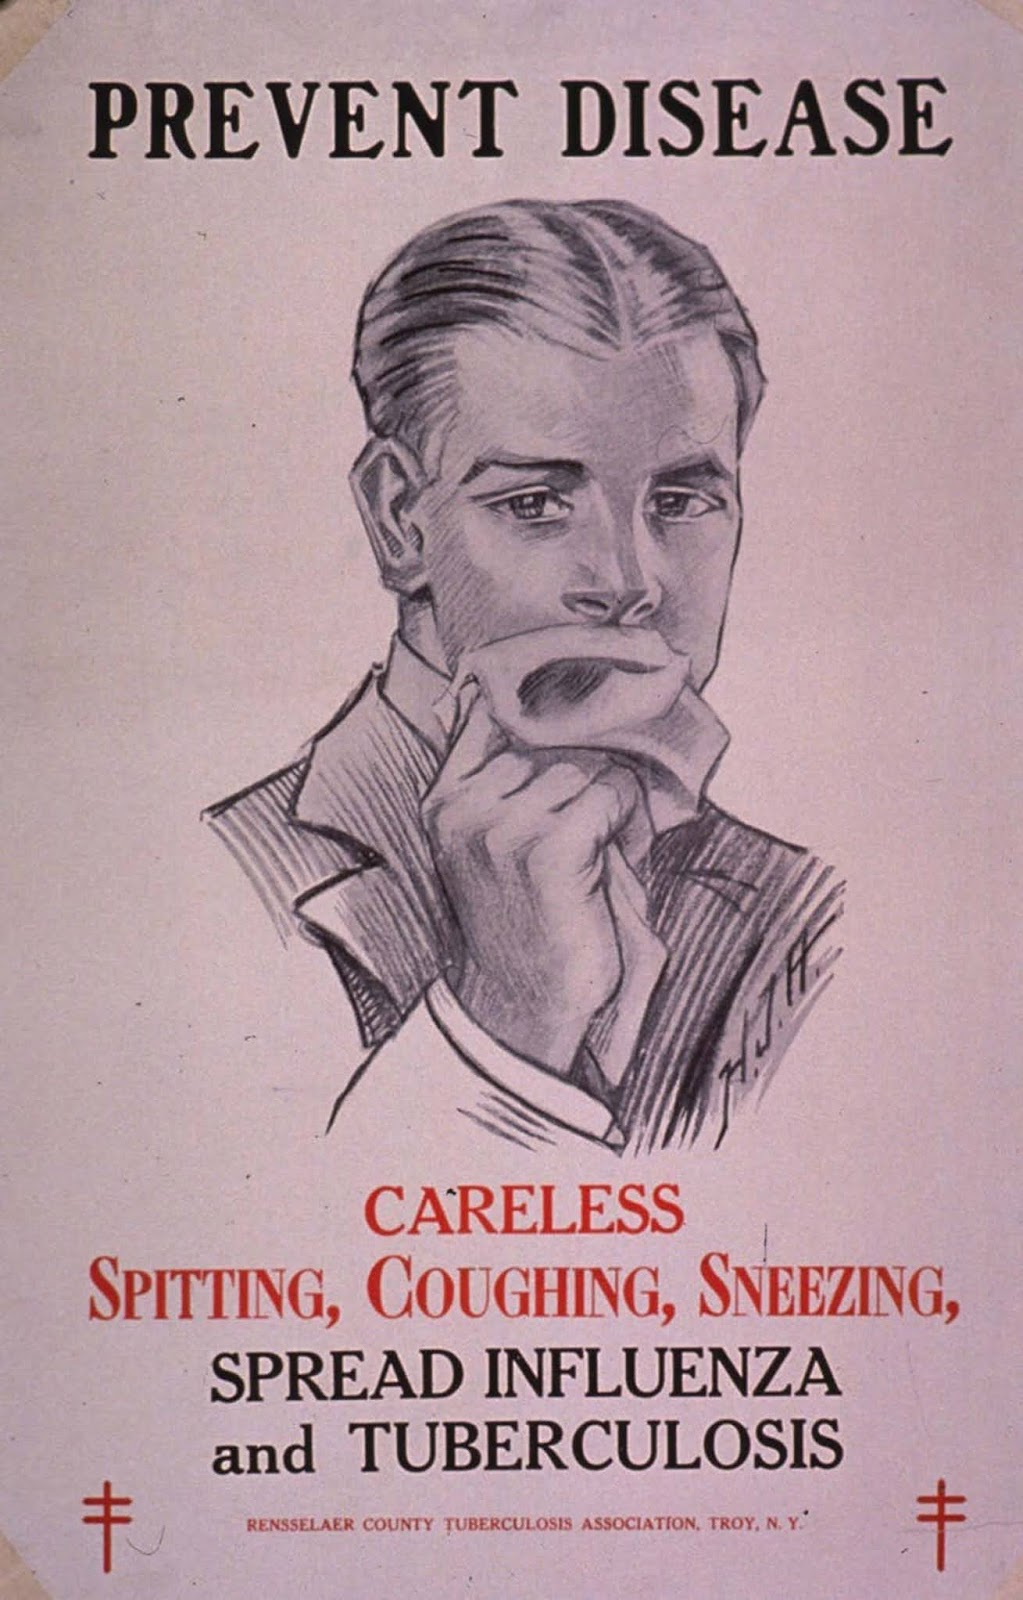 A poster distributed by Rennsselaer County Tuberculosis Association in New York in 1918.